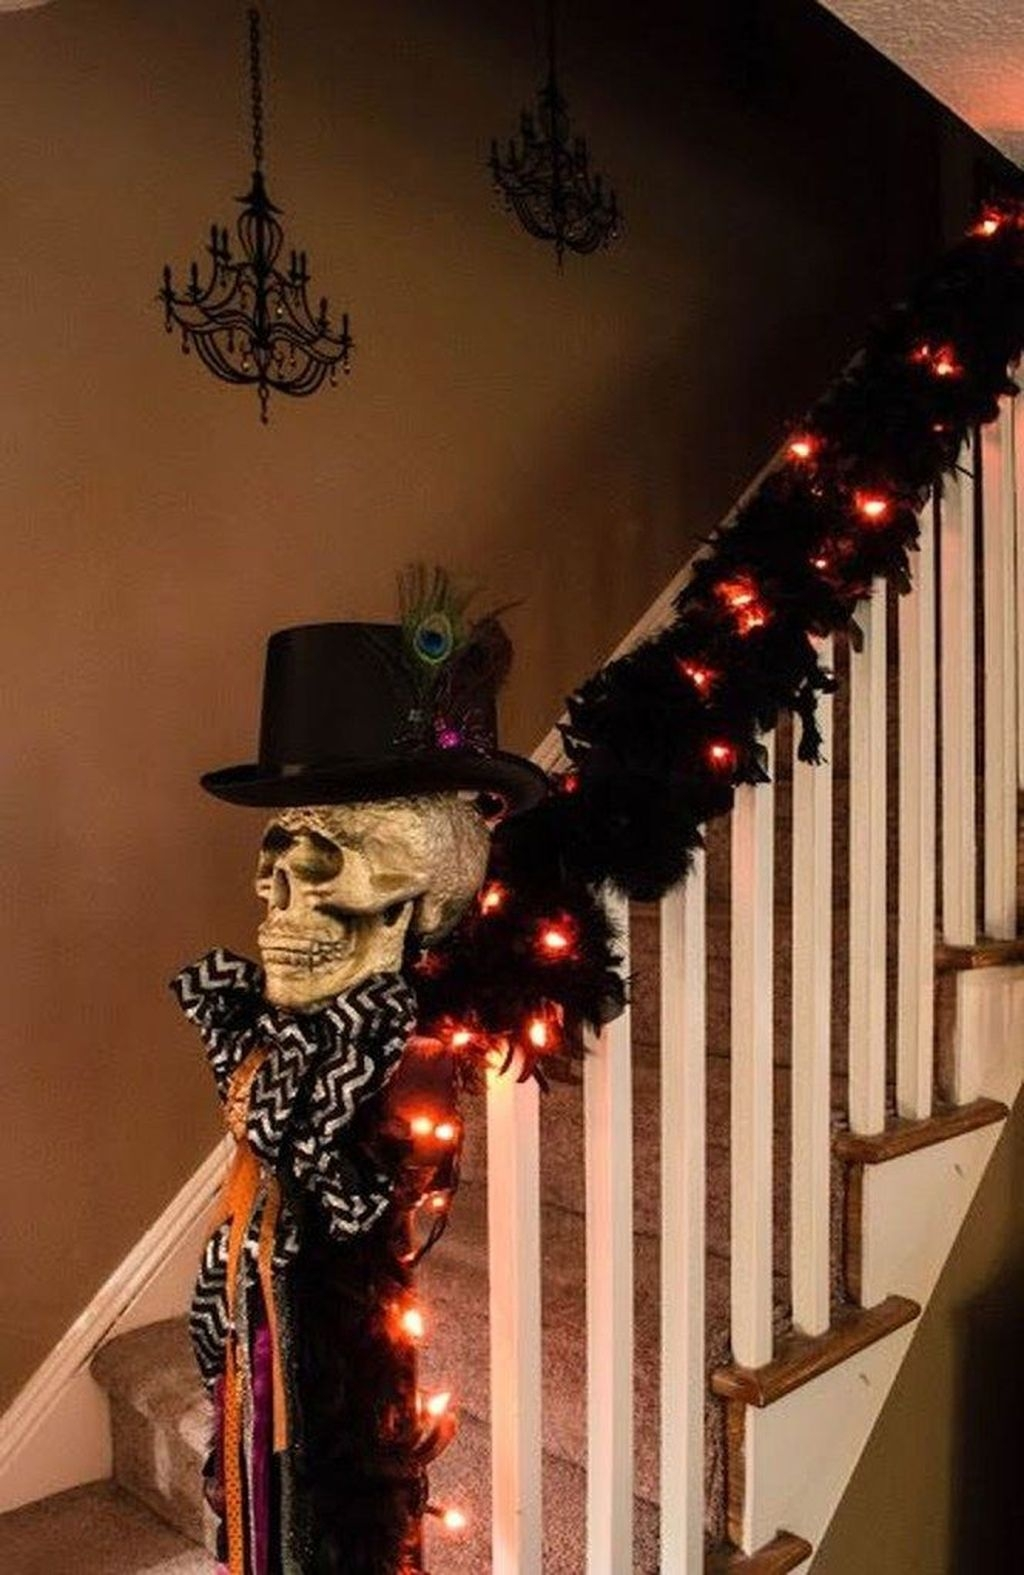 Casual Halloween Decorations Ideas That Are So Scary06